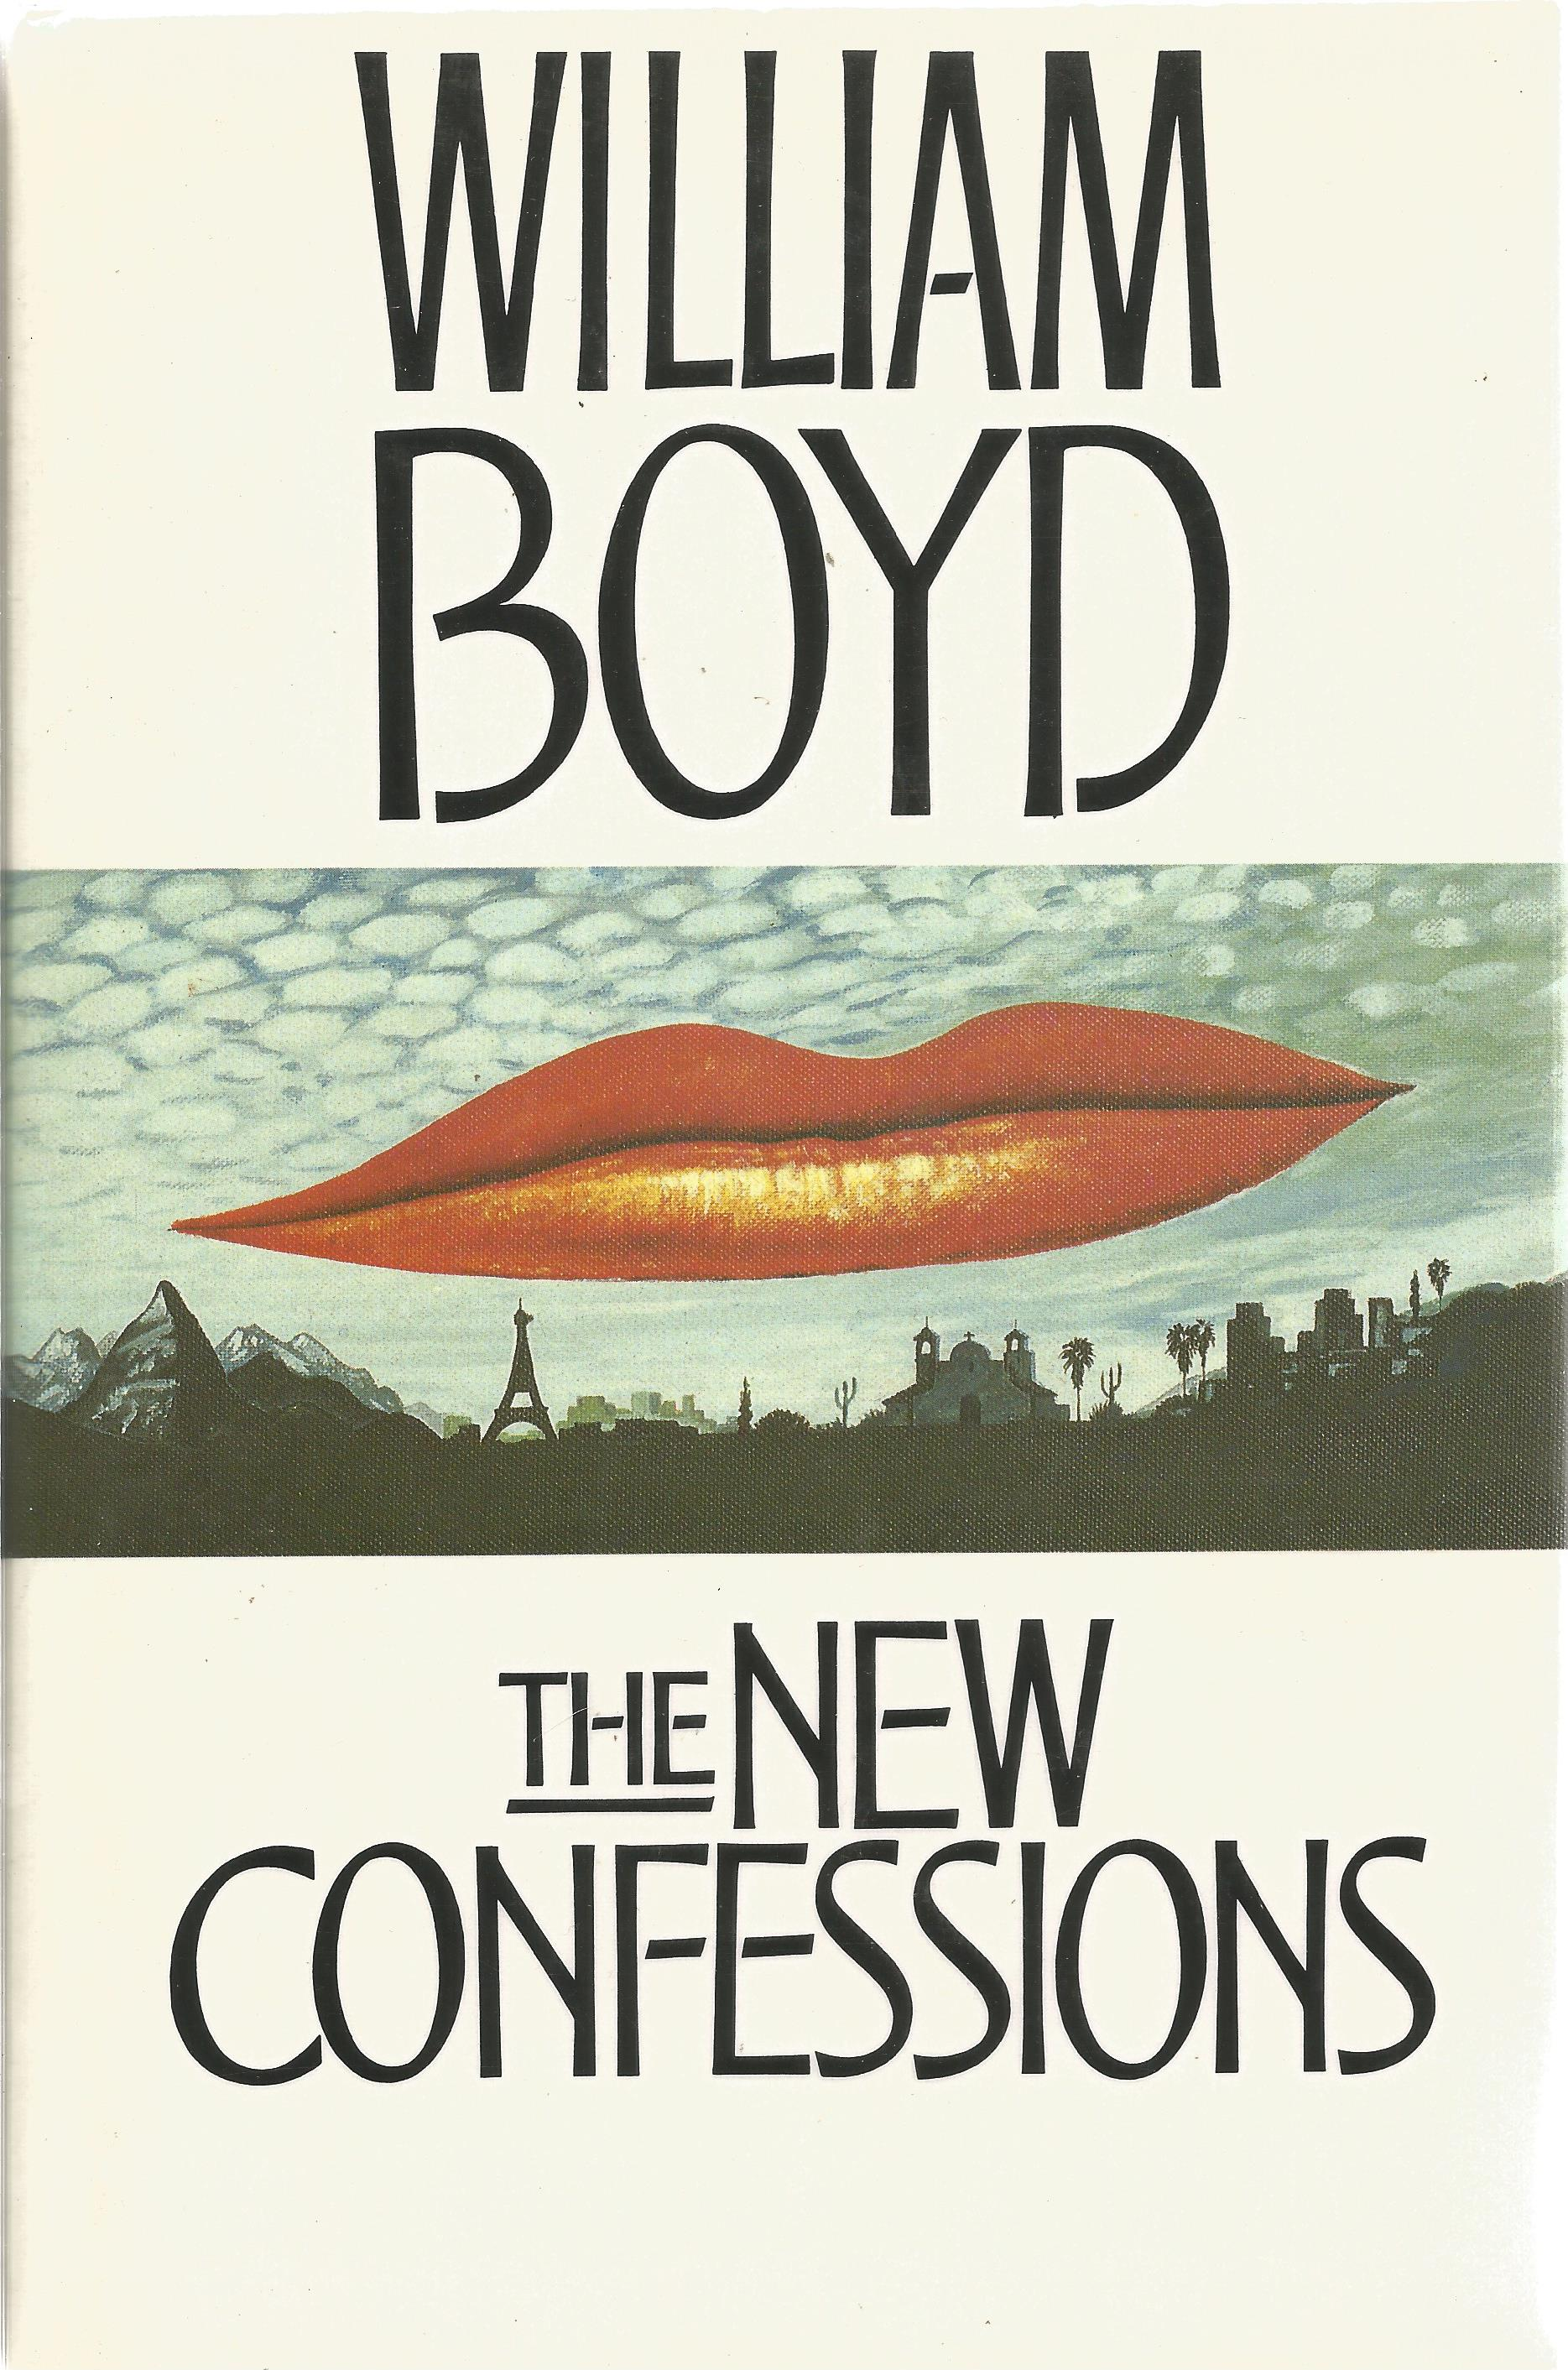 William Boyd Hardback Book The New Confessions signed by the Author on the Title Page dust cover and